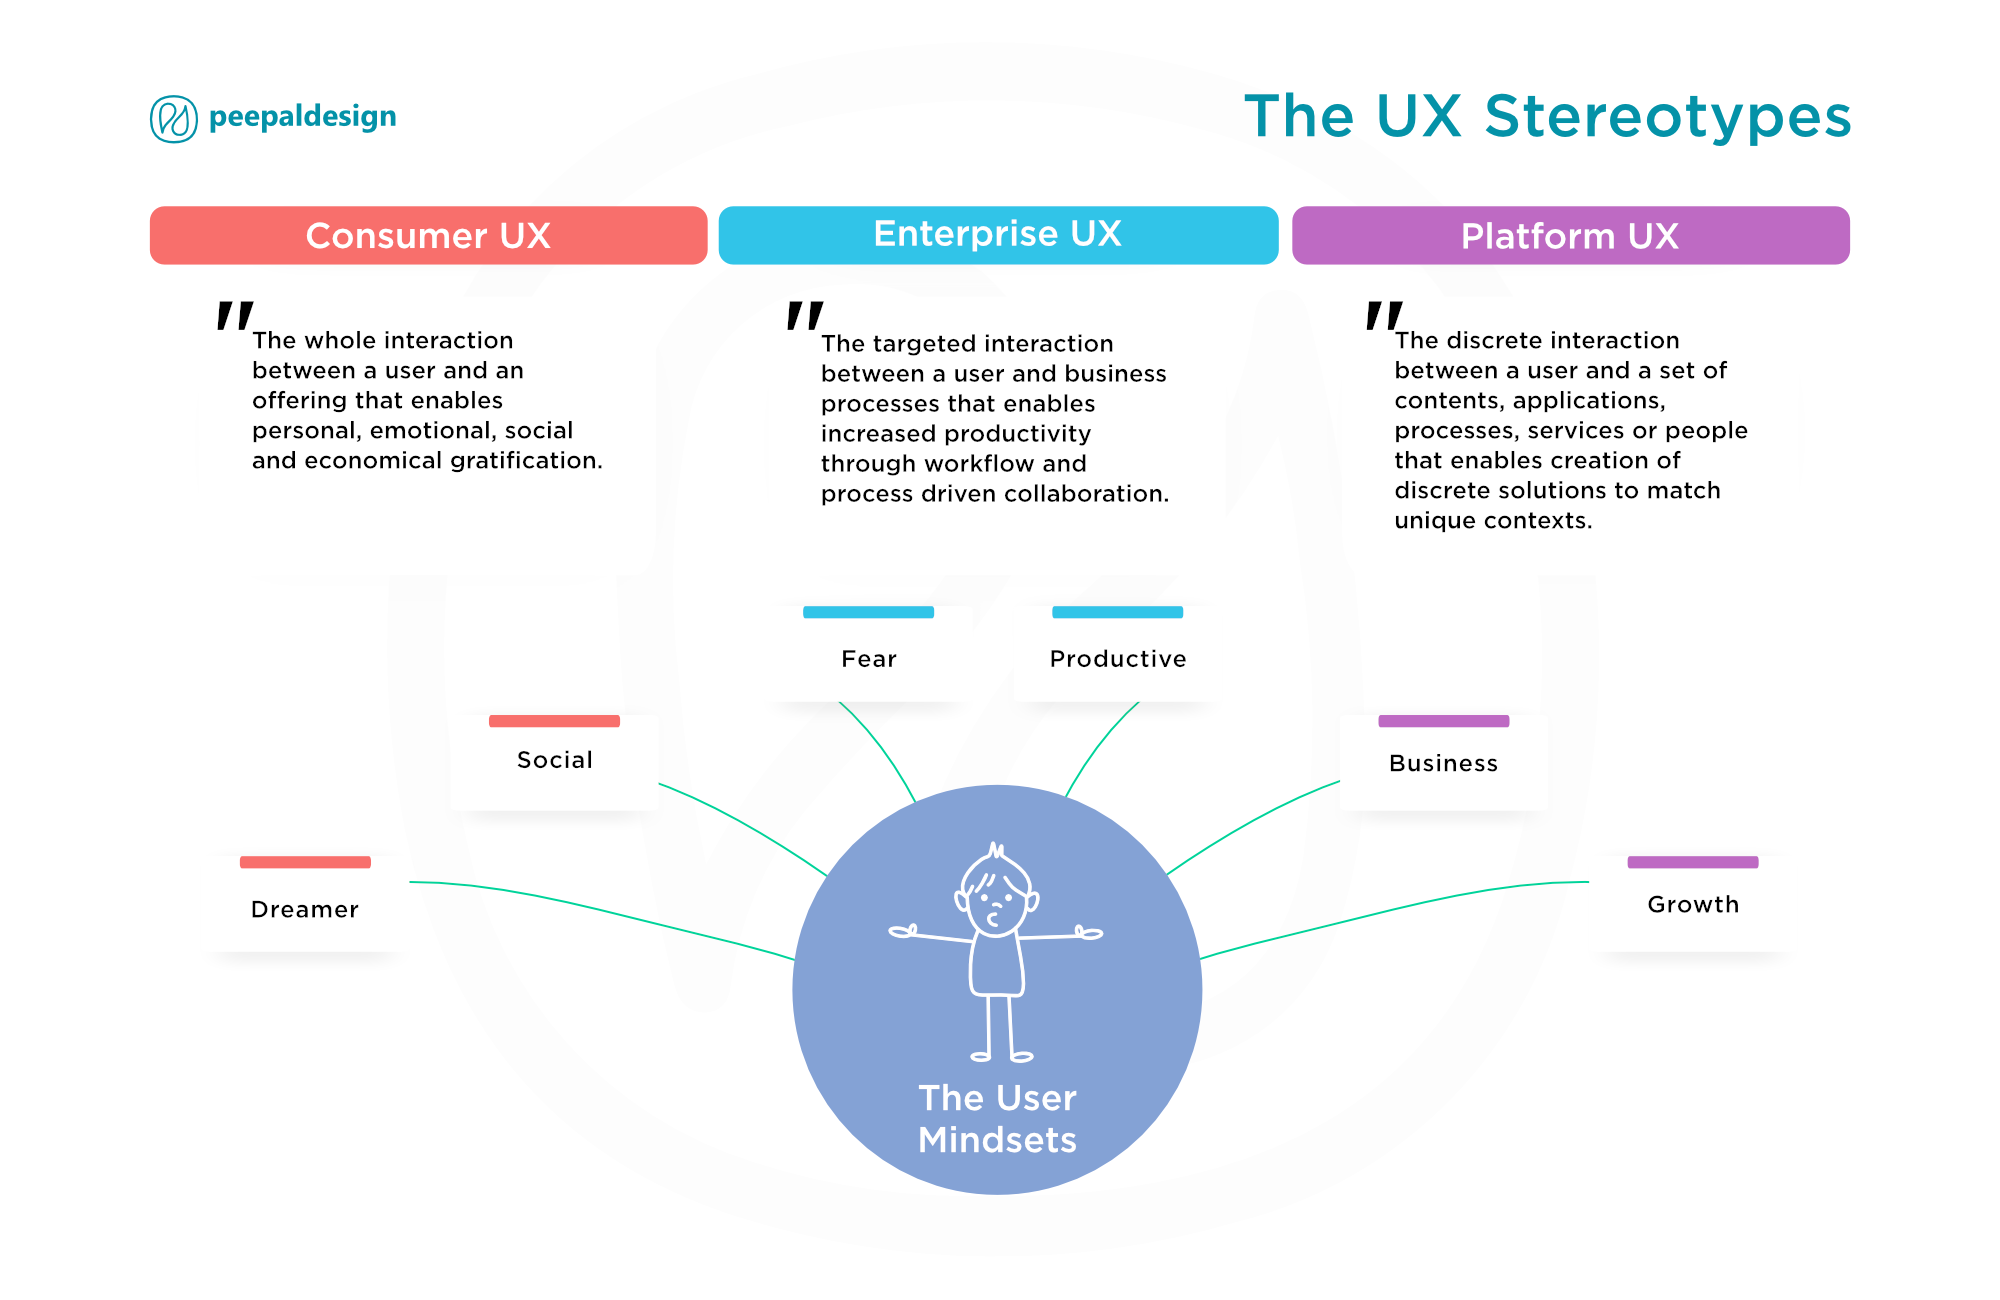 The UXer's Dilemma. Consumer vs. Enterprise vs. Platform UX. How the mindsets vary for different UX interventions.